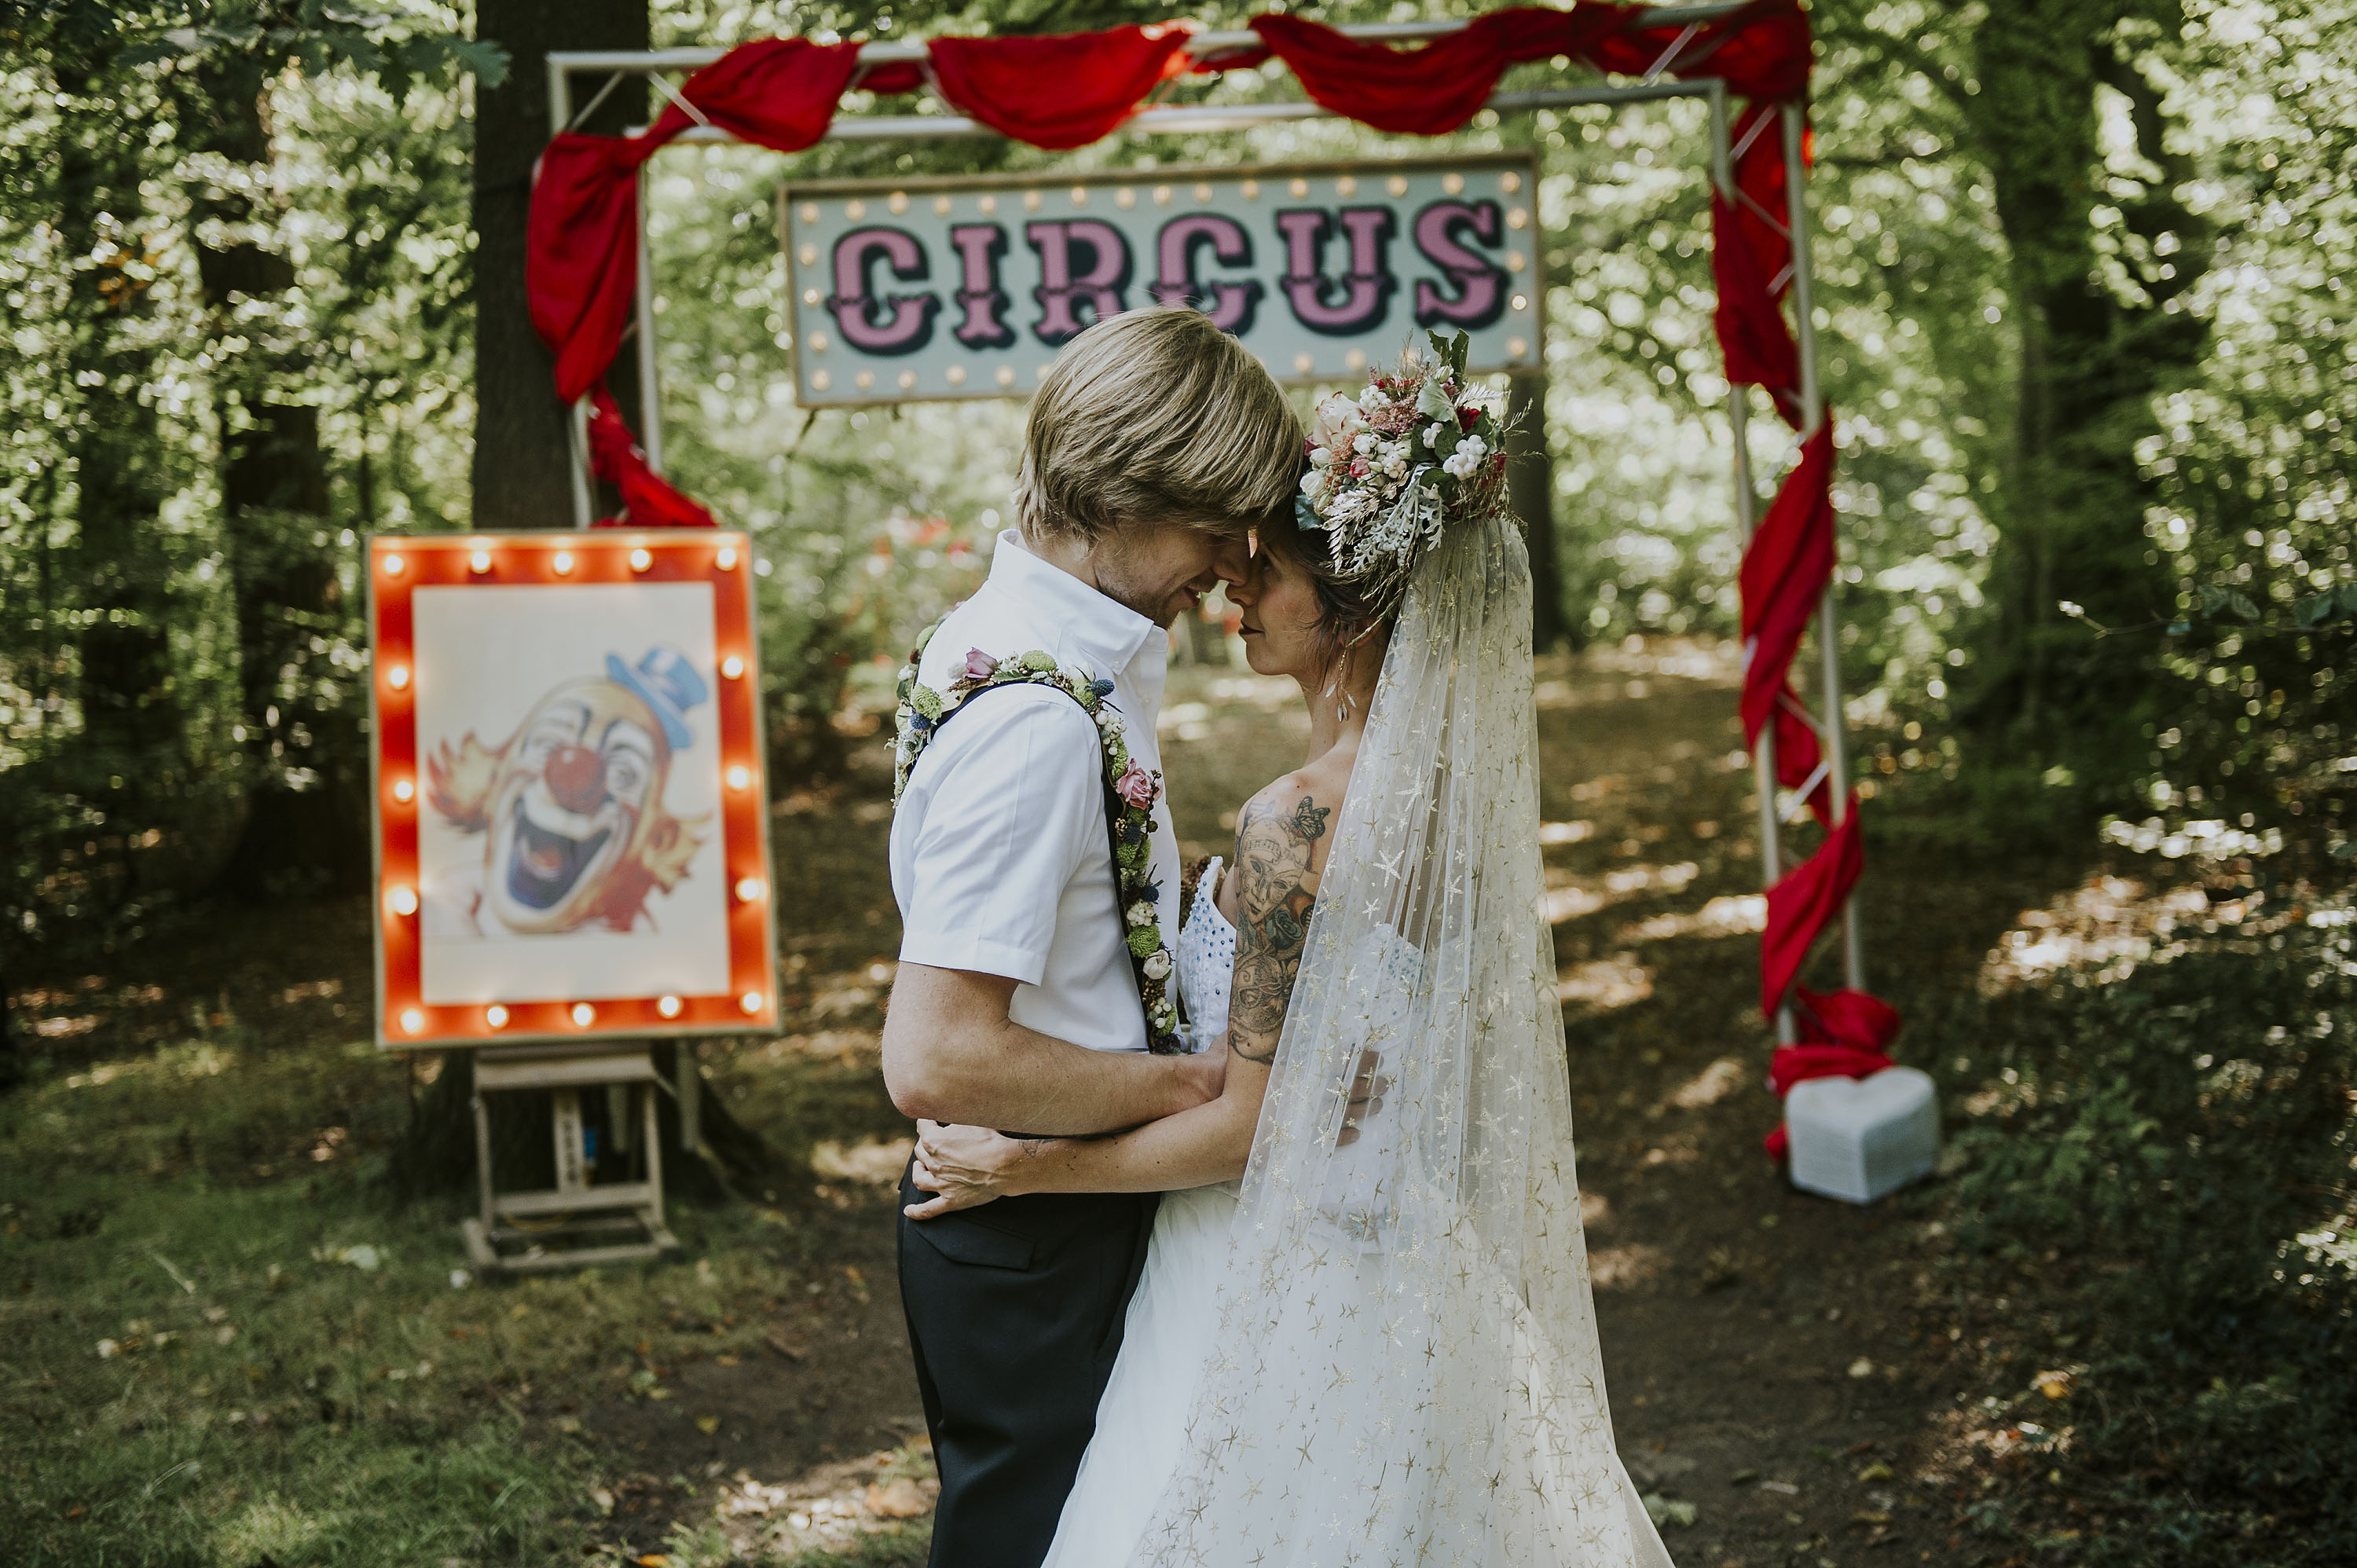 circus woodland wedding - quirky circus wedding props - celestial bridal veil & unique wedding headdress